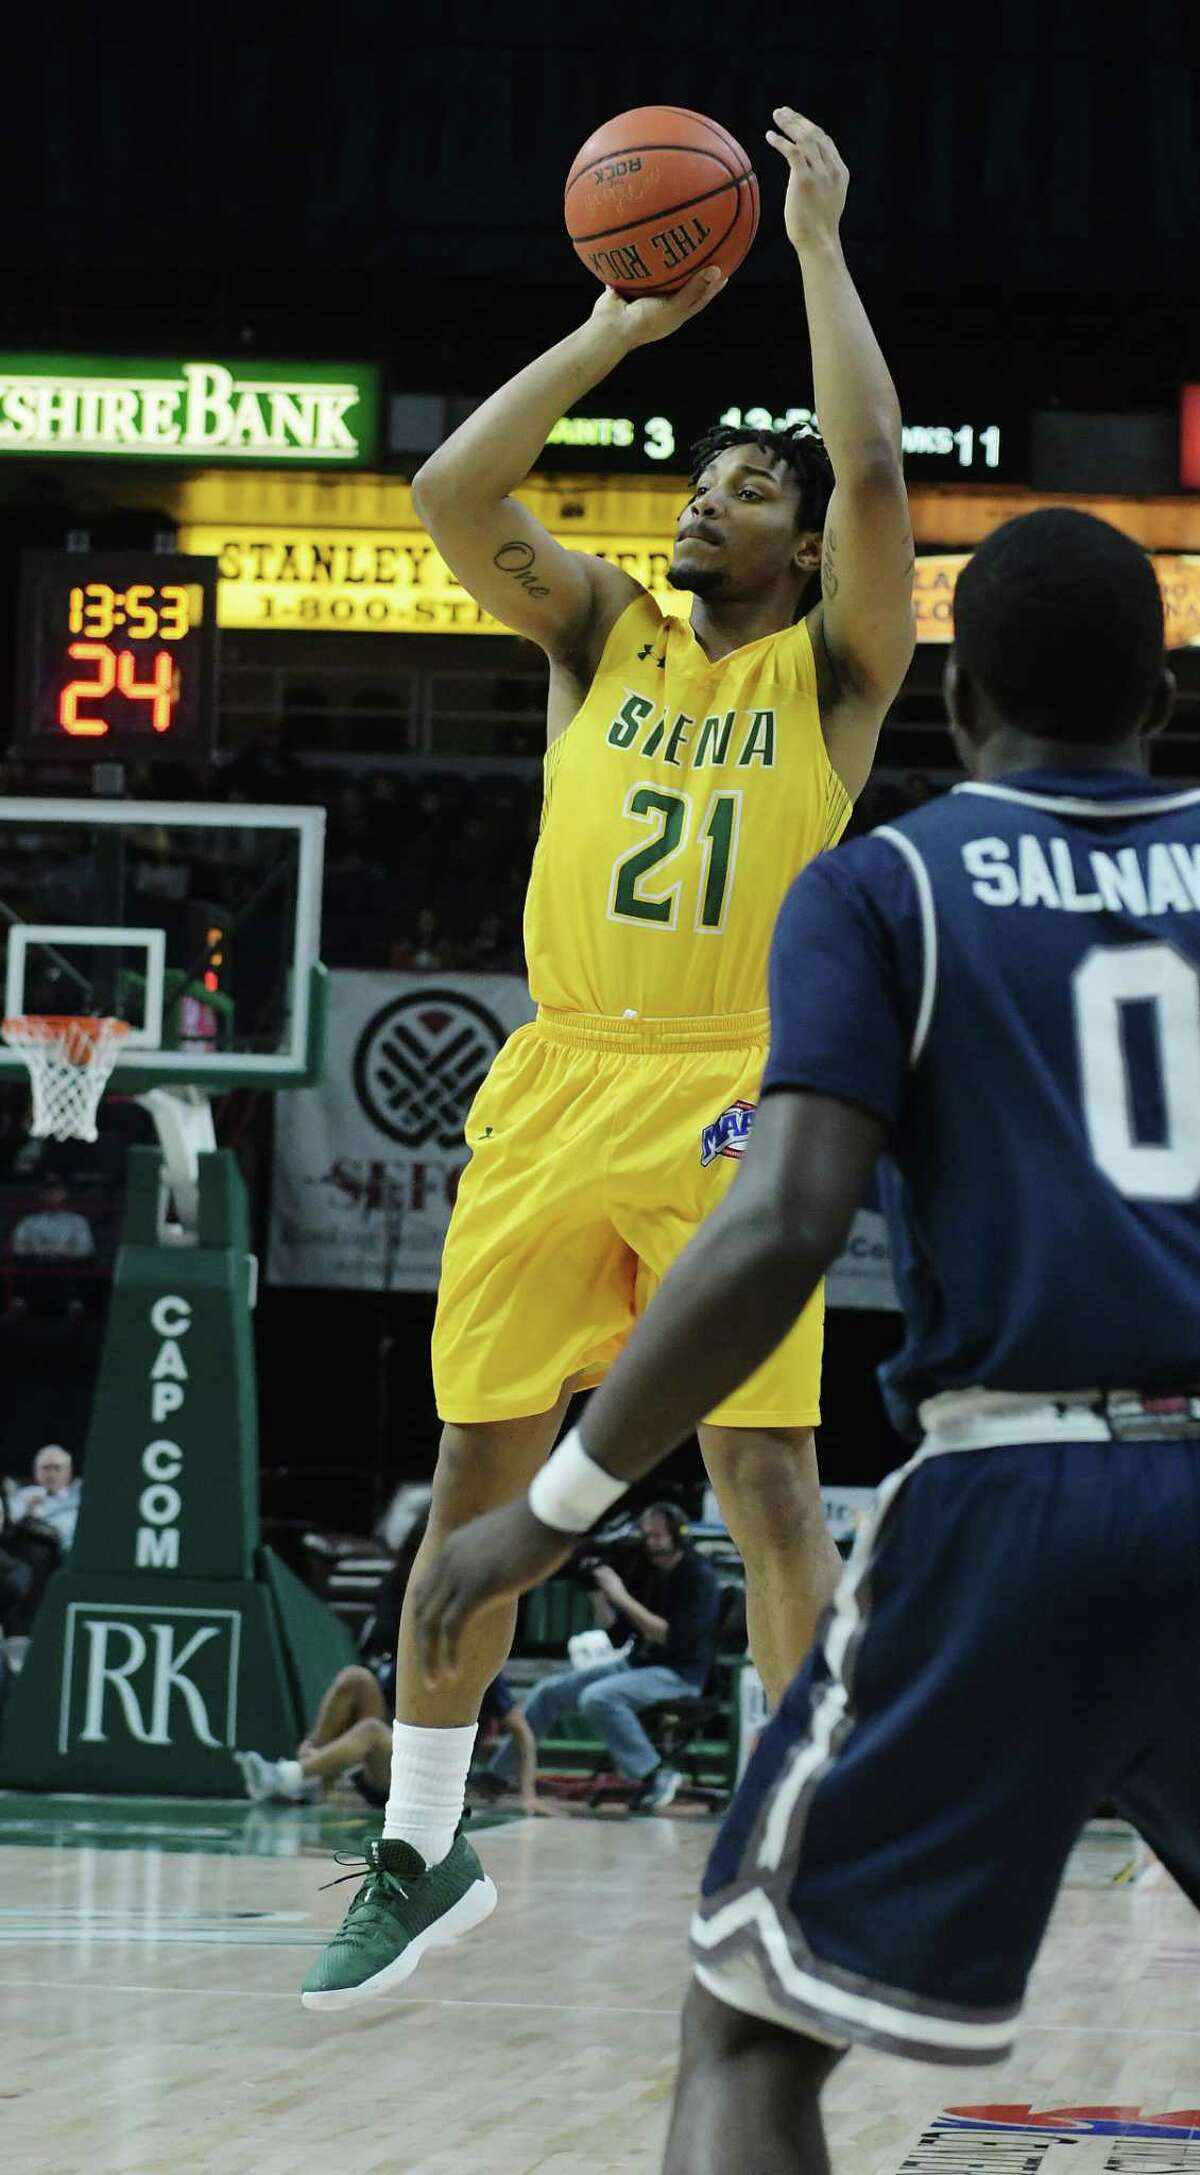 Ahsante Shivers of Siena puts up a shot during their game against Monmouth on Sunday, Feb. 18, 2018, in Albany, N.Y. (Paul Buckowski/Times Union)